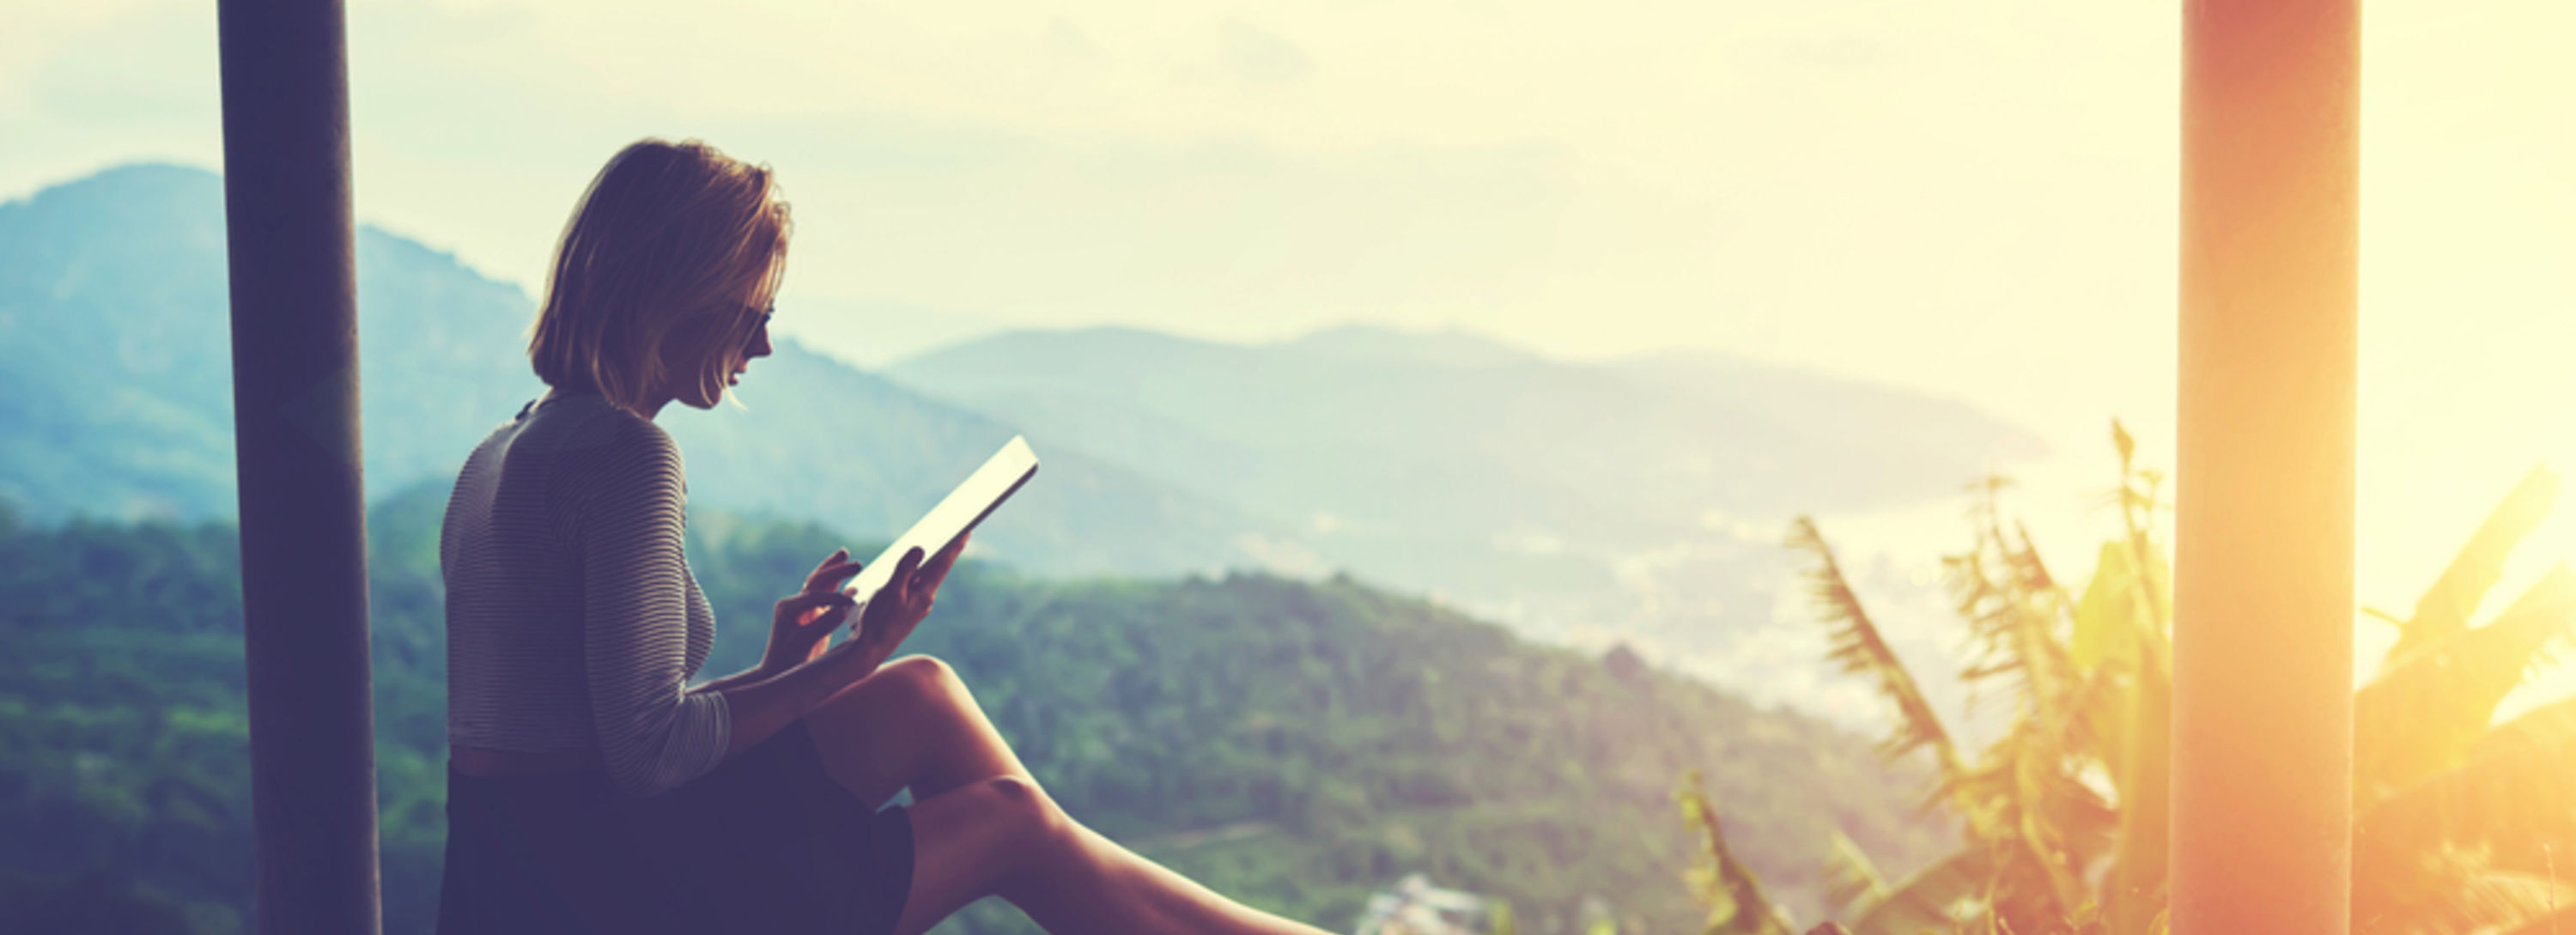 Currently, one of the safest ways to travel is through the pages of a book | WhereTraveler